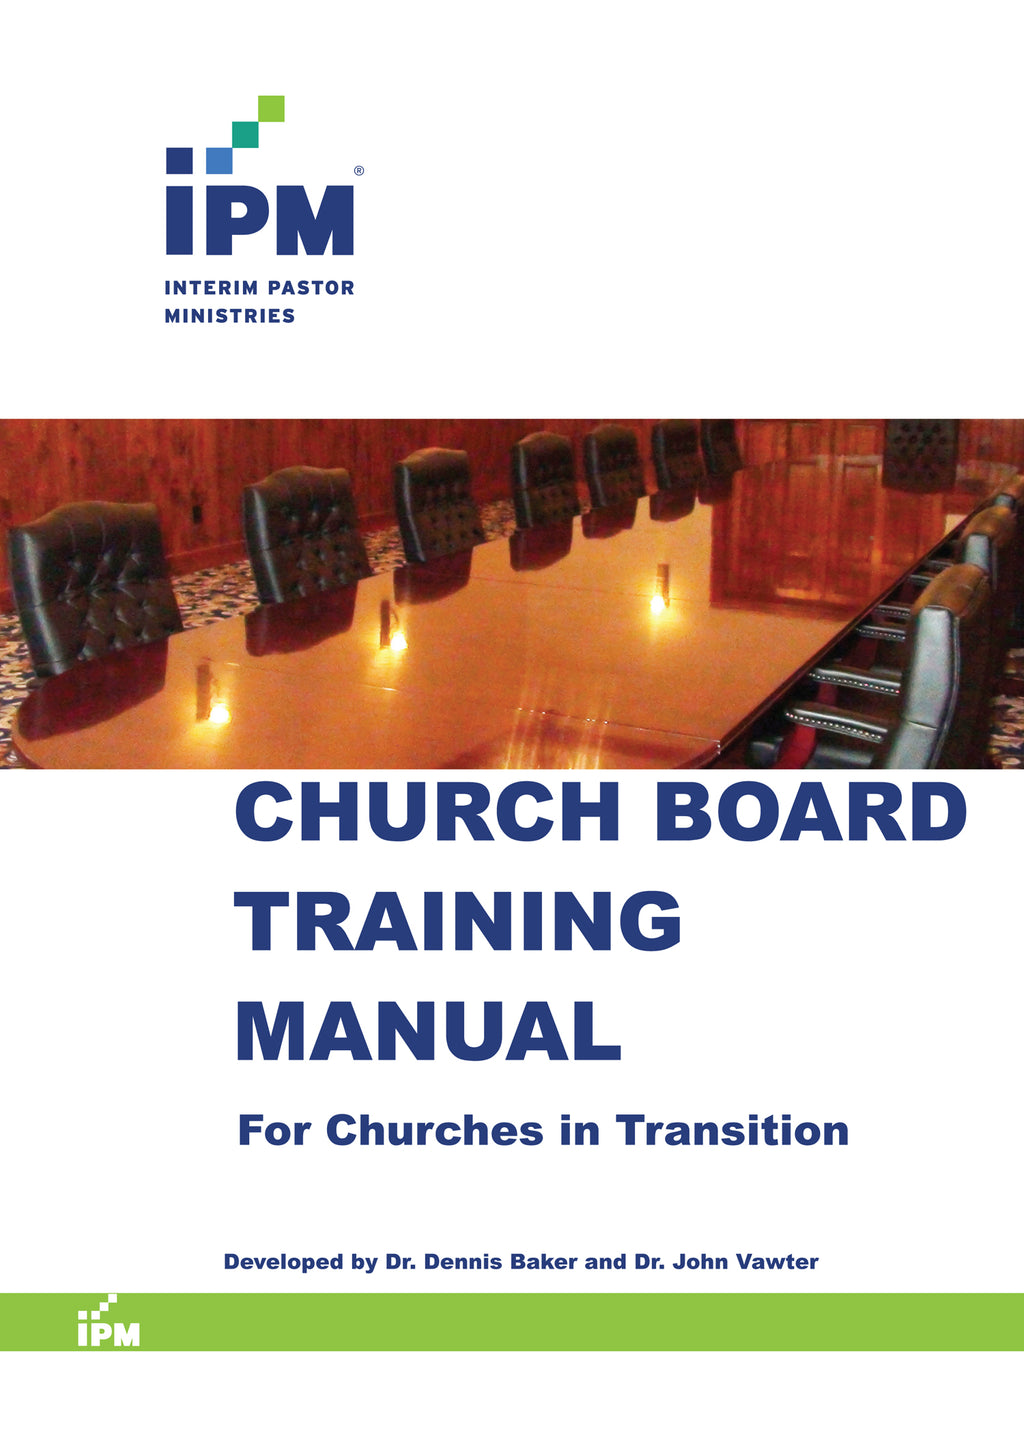 Church Board Training Manual - CBTM